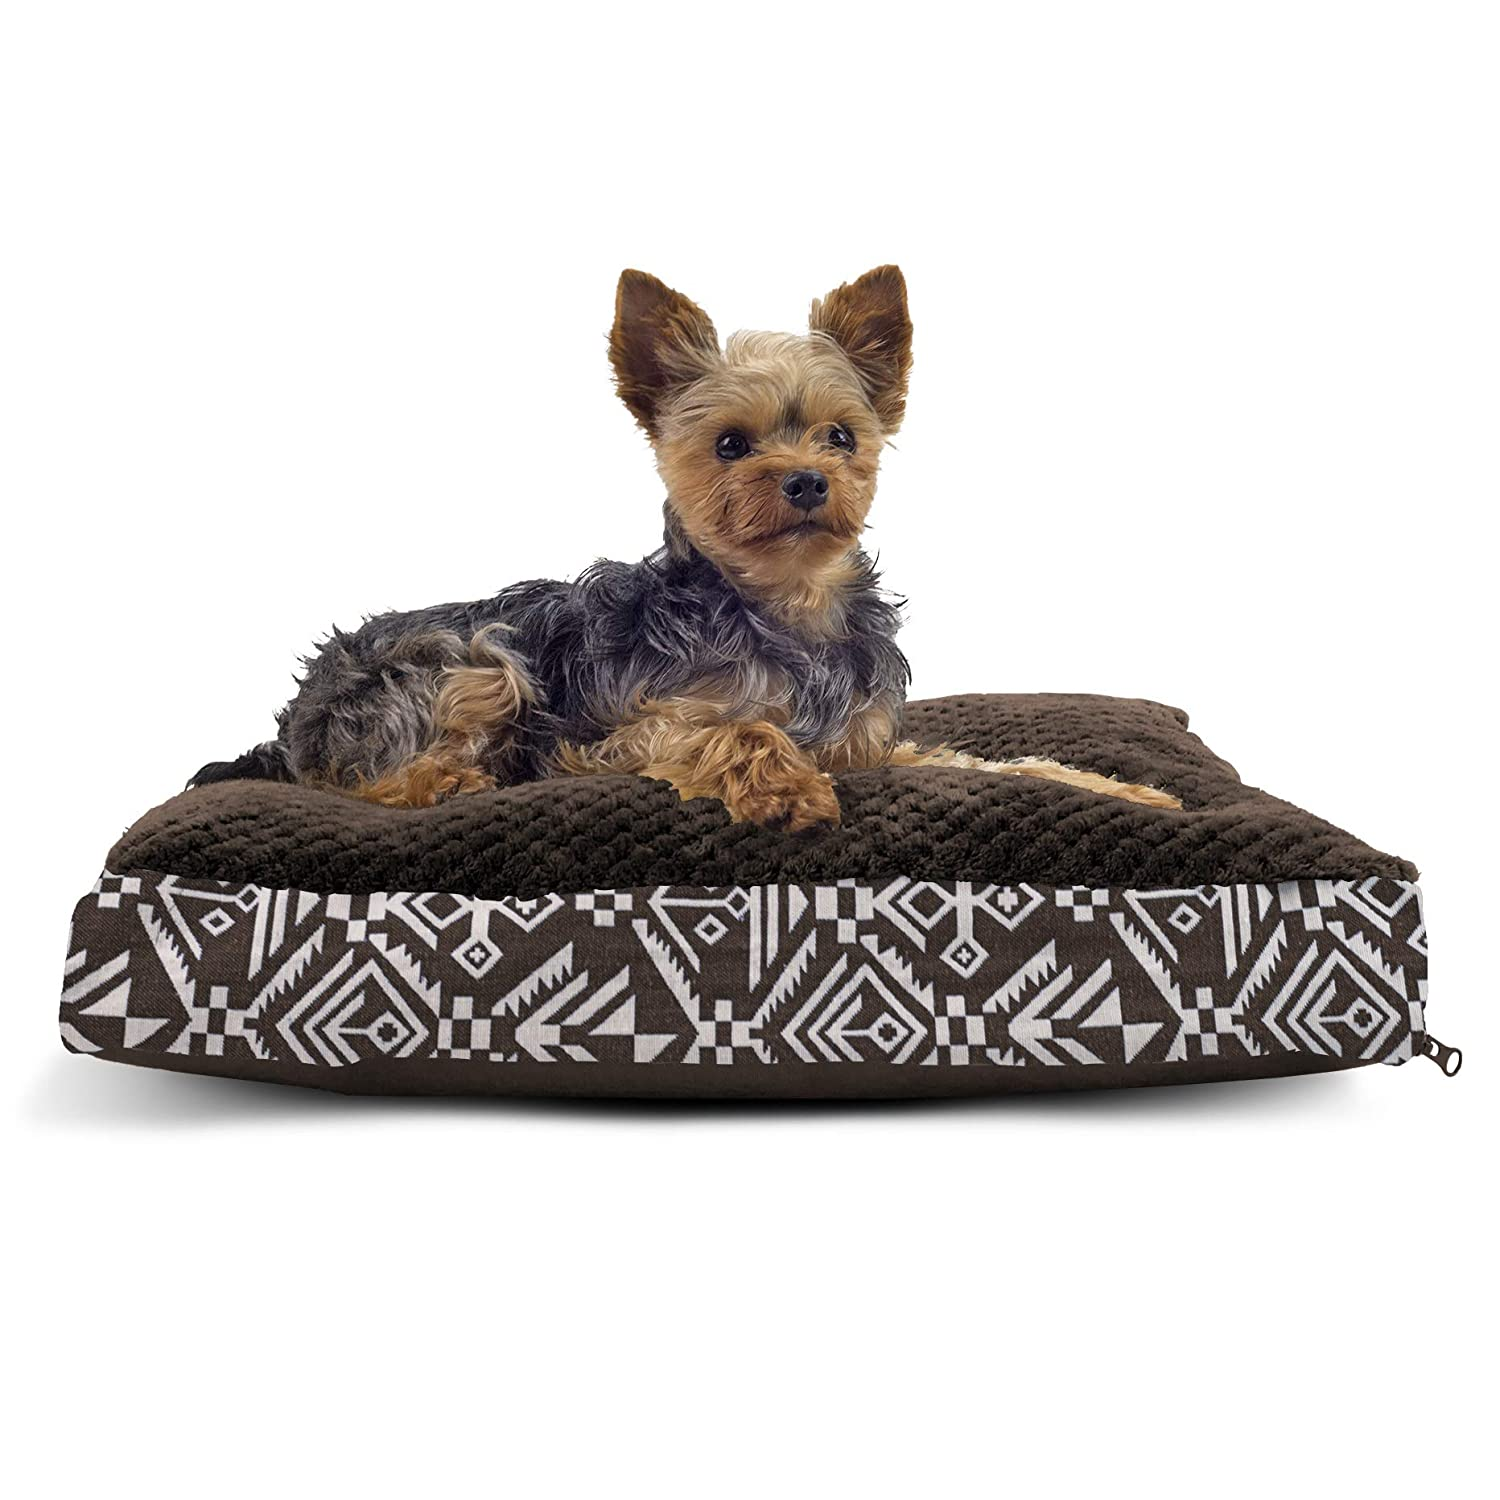 Furhaven Pet Dog Bed - Deluxe Plush Kilim Pillow Cushion Traditional Mattress Pet Bed with Removable Cover for Dogs and Cats, Southwest Espresso, Small